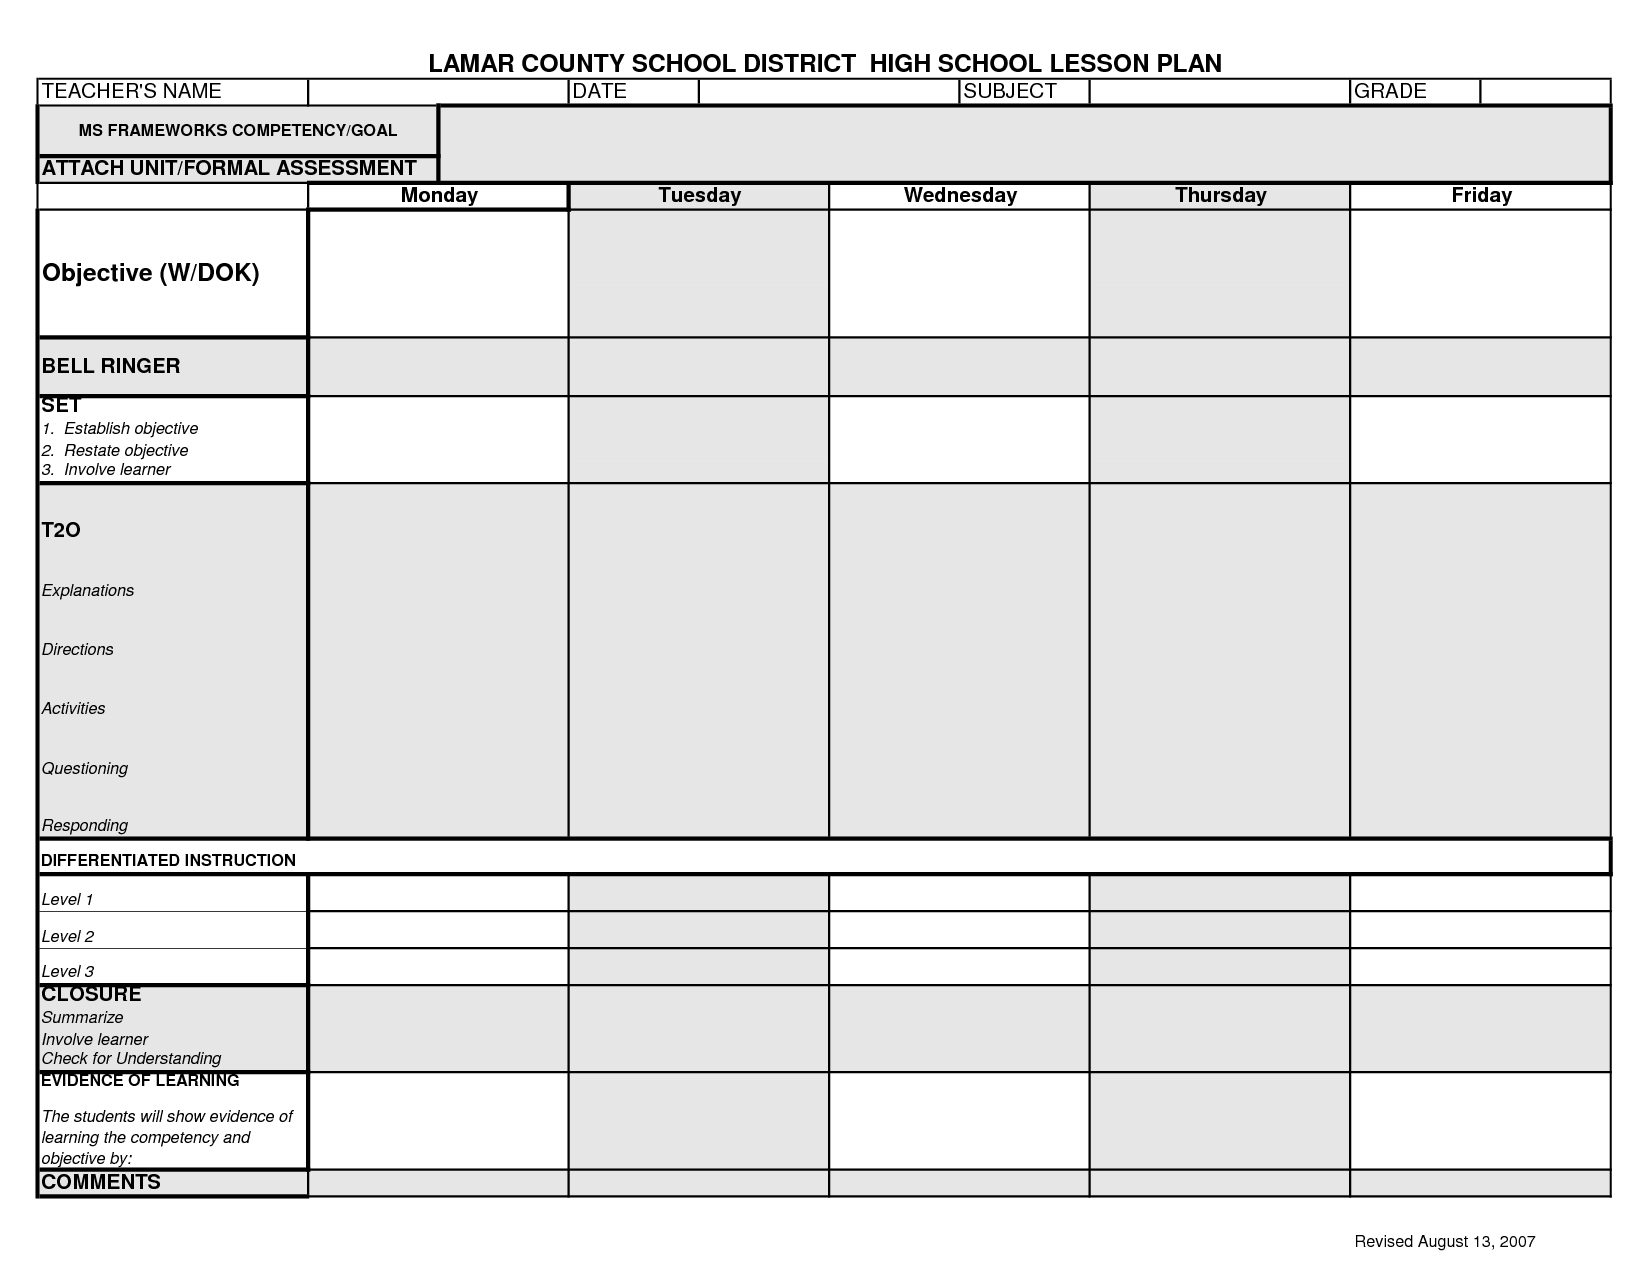 LCSD High School Lesson Plan Template Syllabus Pinterest - Secondary lesson plan template